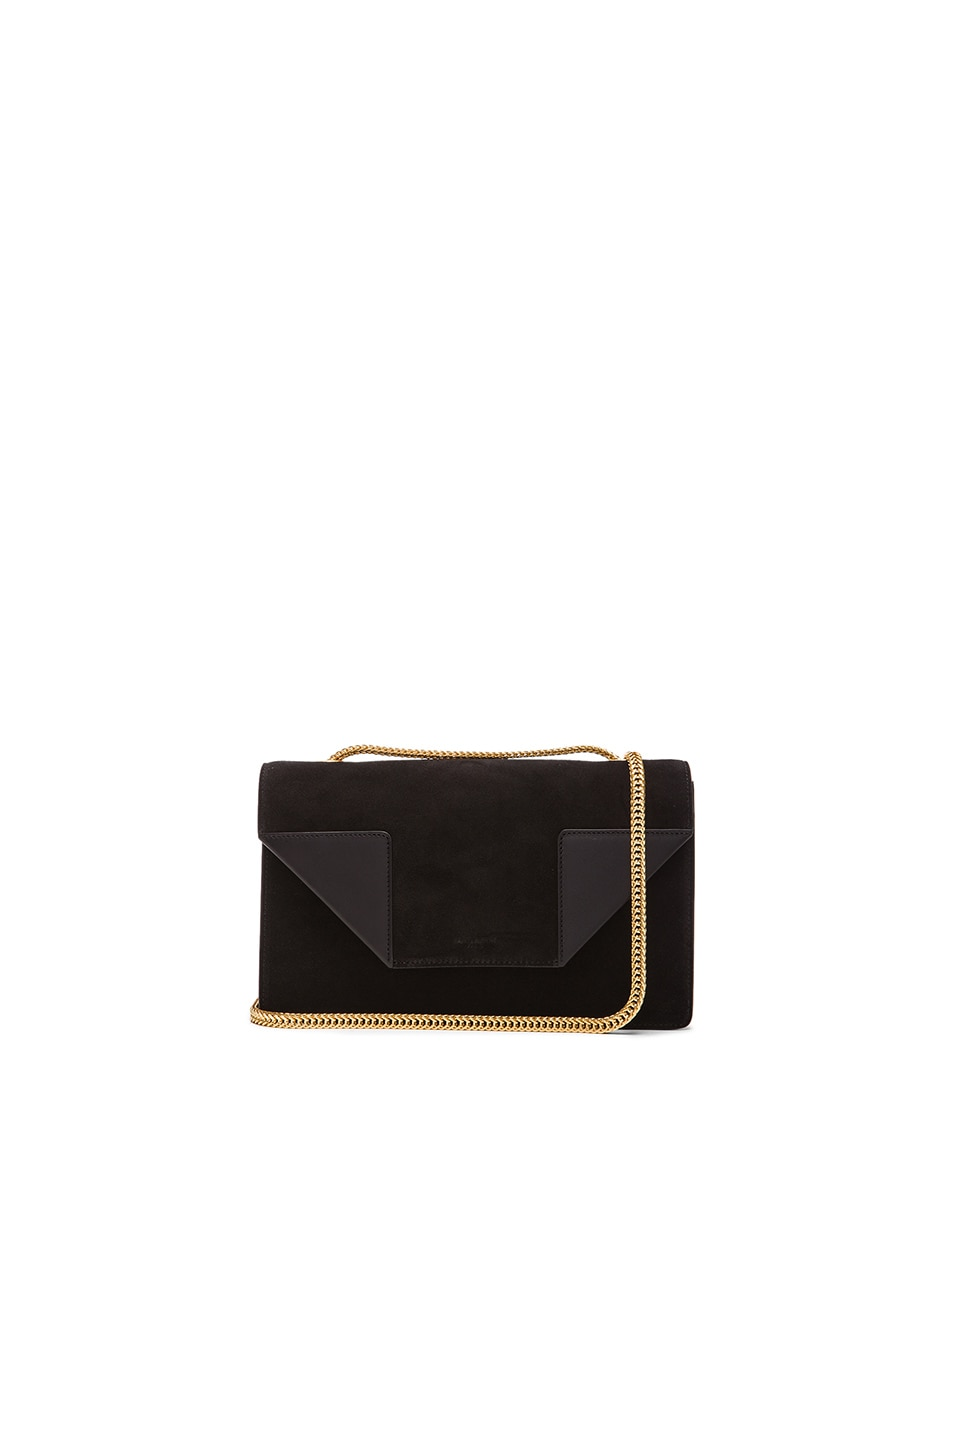 Image 1 of Saint Laurent Small Suede Betty Chain Bag in Black 50b27e0288574